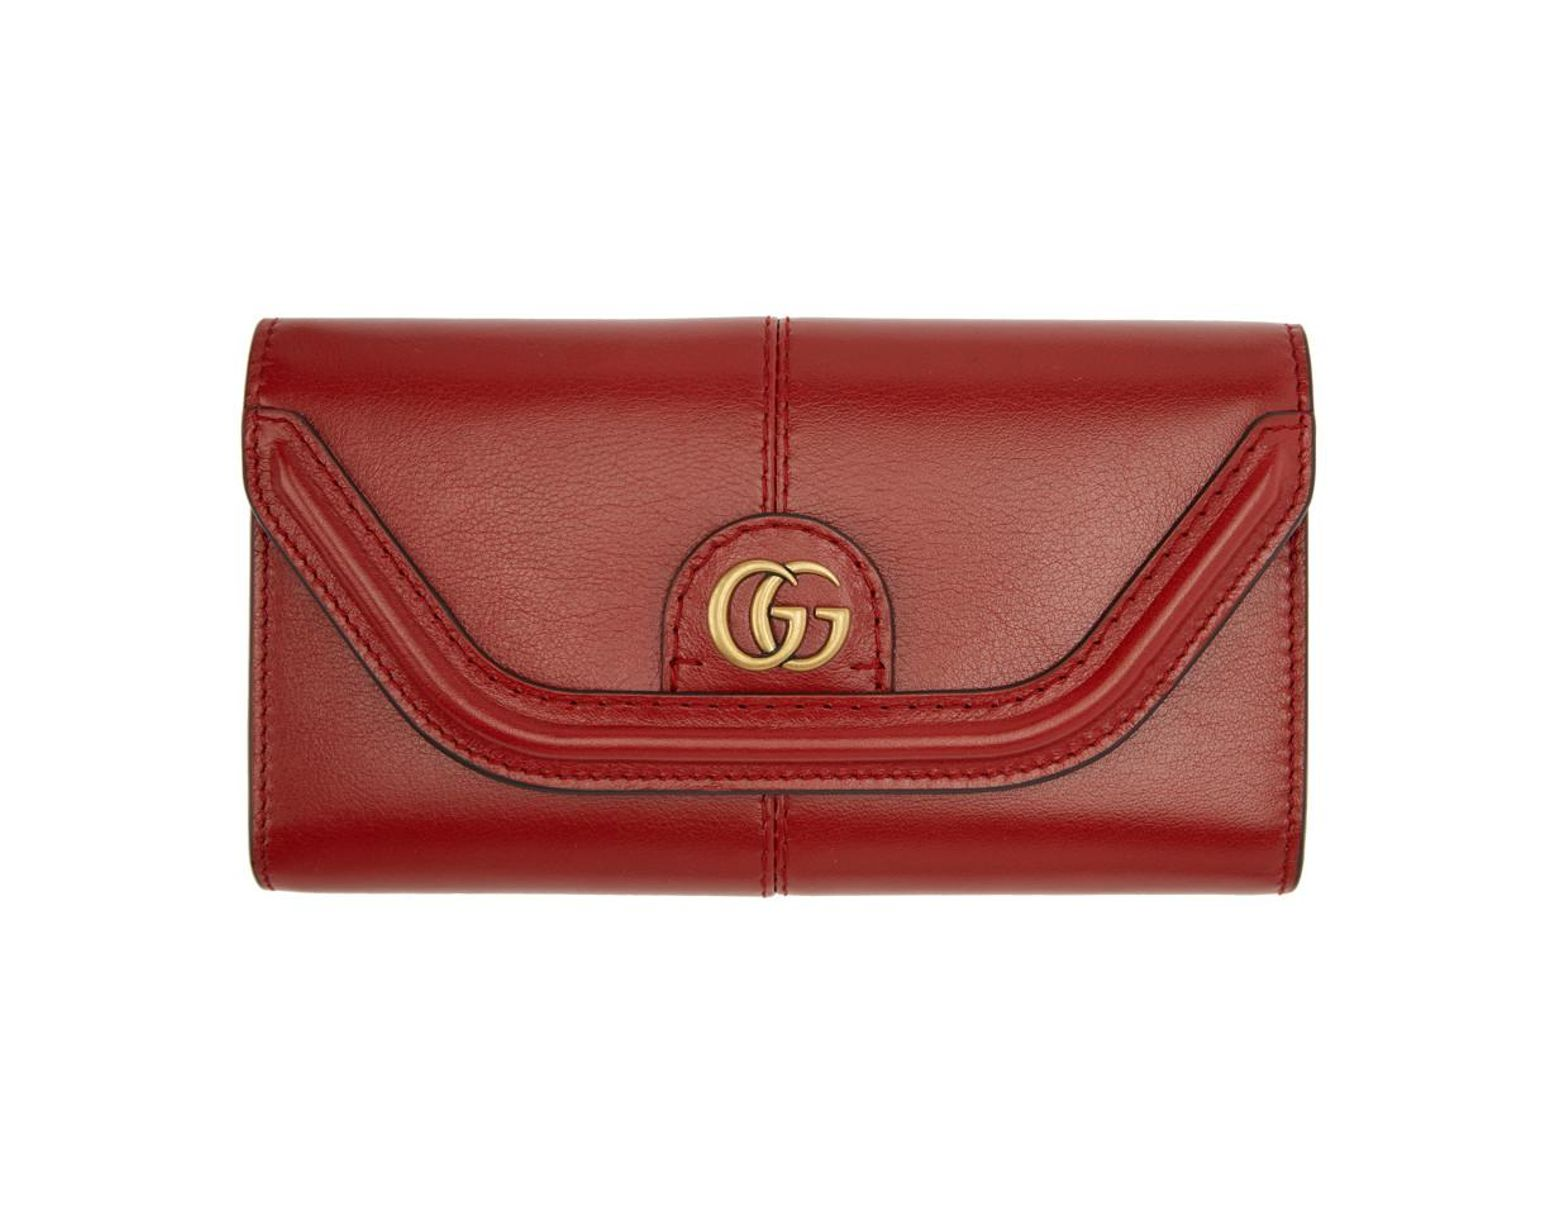 819615ac74e5 Gucci Red GG Default Flap Wallet in Red - Save 9% - Lyst